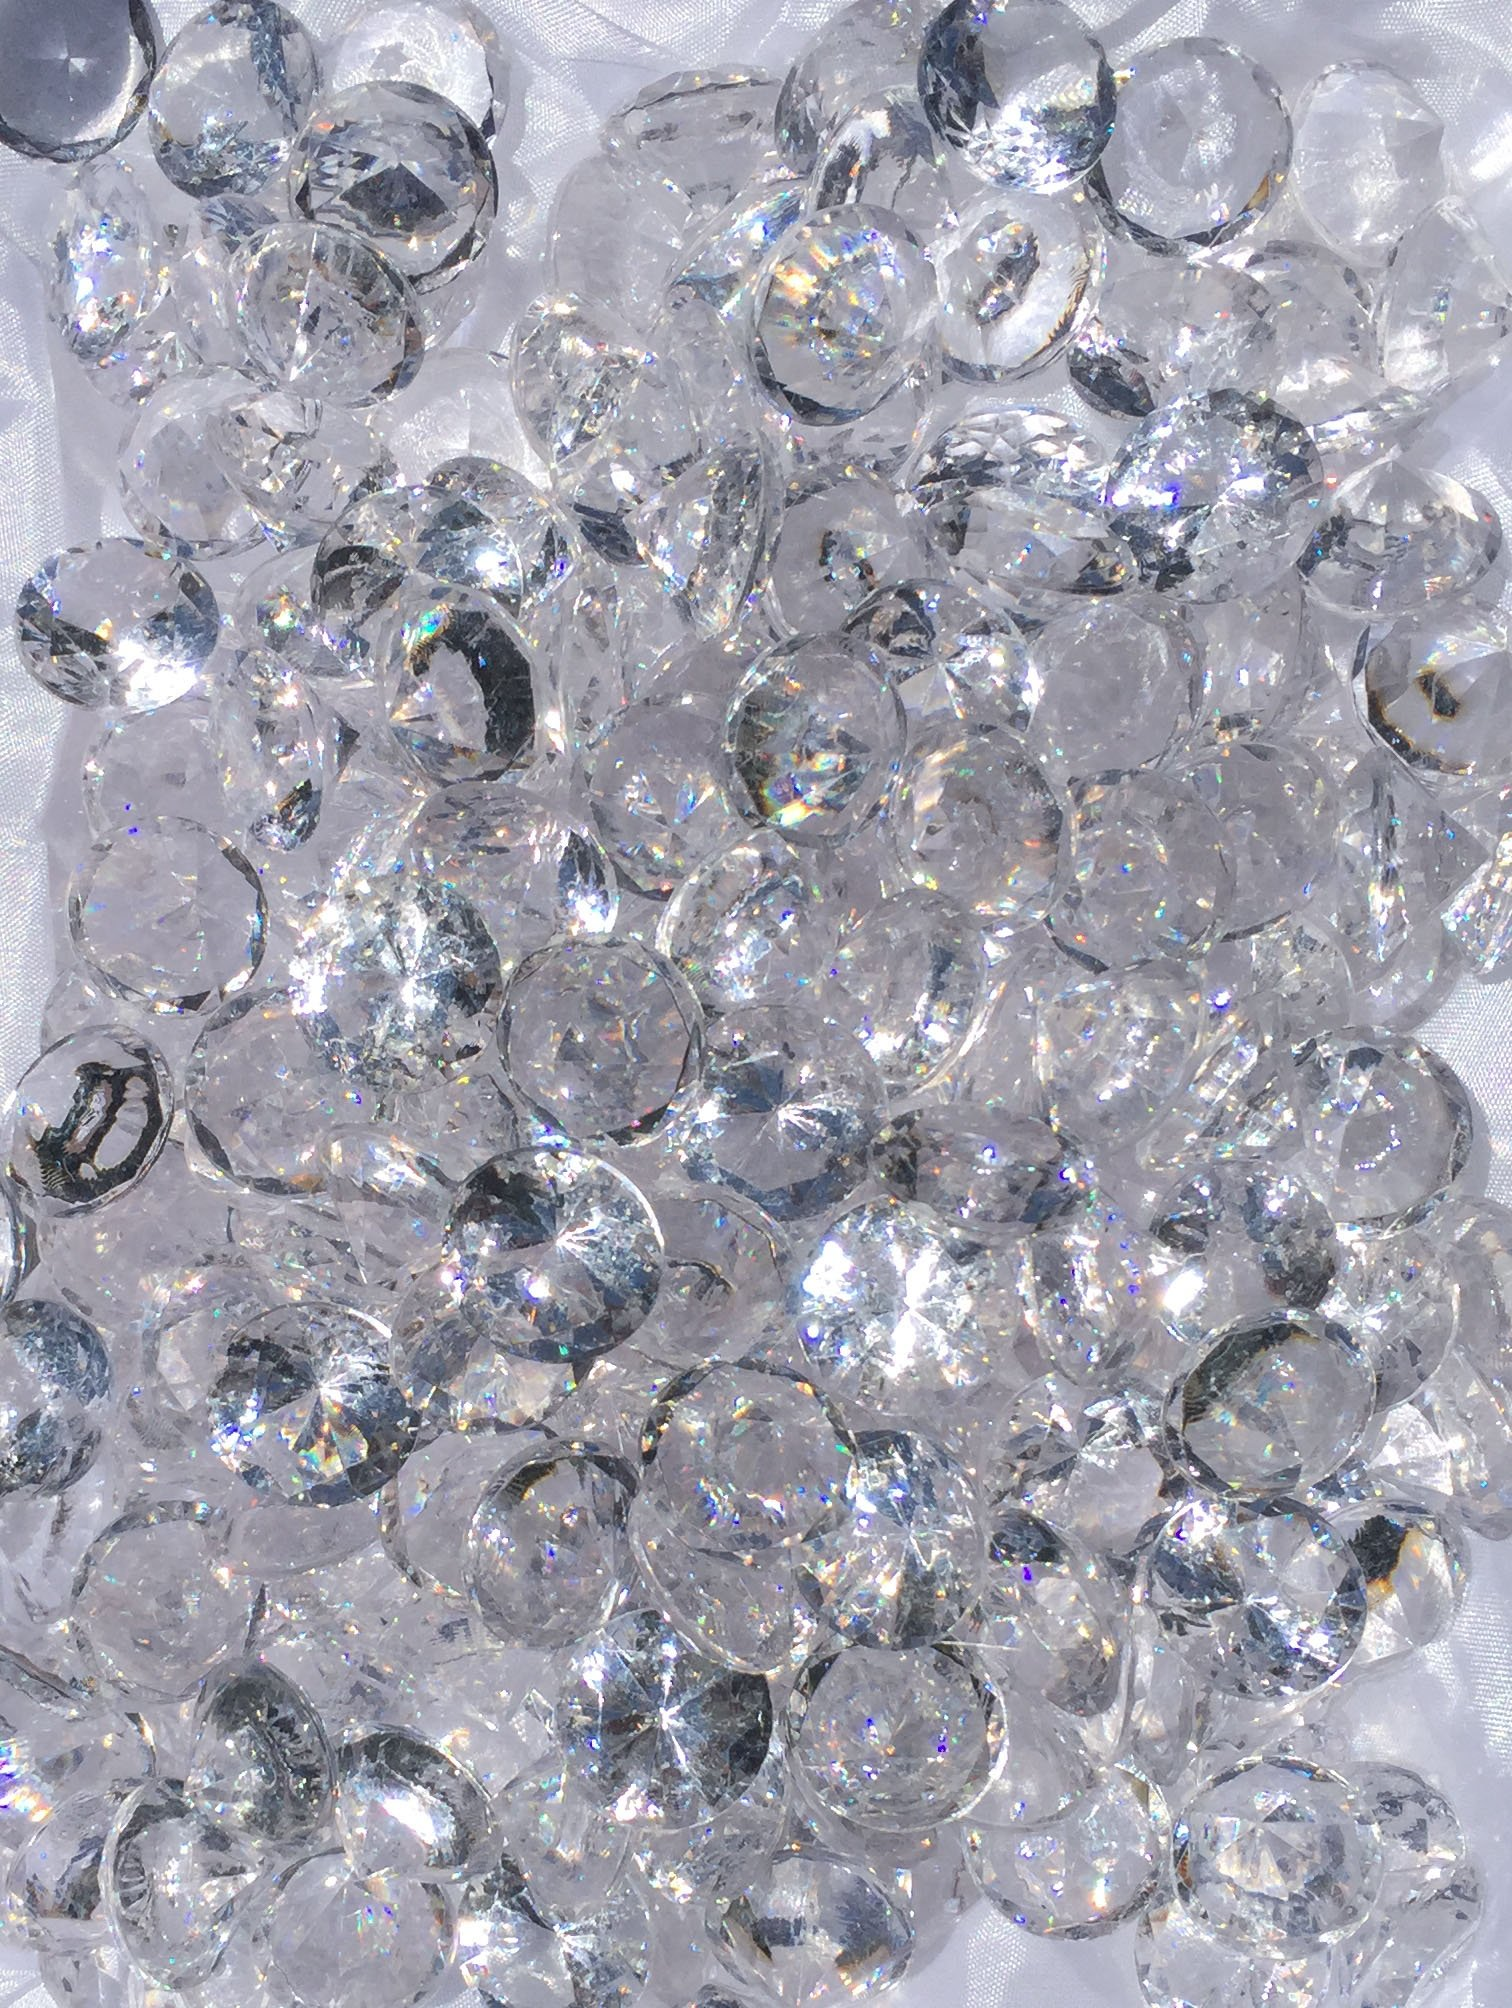 480+ Pieces 20mm Crystal Clear Acrylic Diamond Shape Jewels for Party Decoration ,Event ,Wedding , Vase Fillers, Arts & Crafts by SunRise (Image #4)